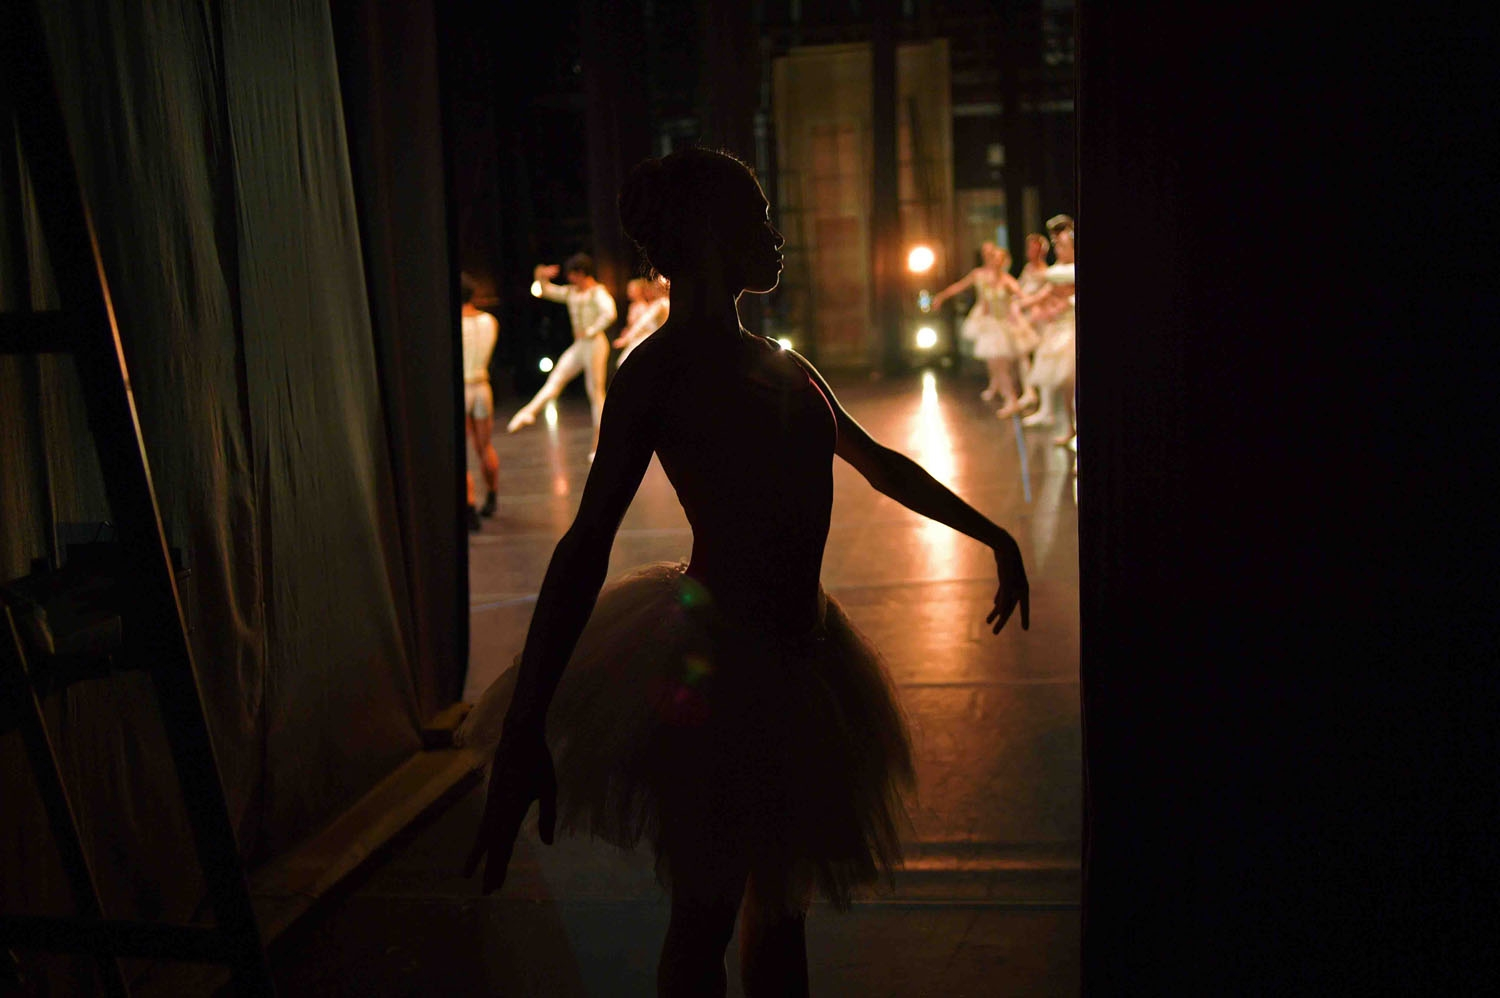 A ballet dancers rehearses backstage before the opening night of a Ballet production at the Municipal Theater in Rio de Janeiro, Brazil on June 20, 2018. - In 2017, the ravages of Brazil's economic crisis hit hard and many of the Municipal Theater Balle